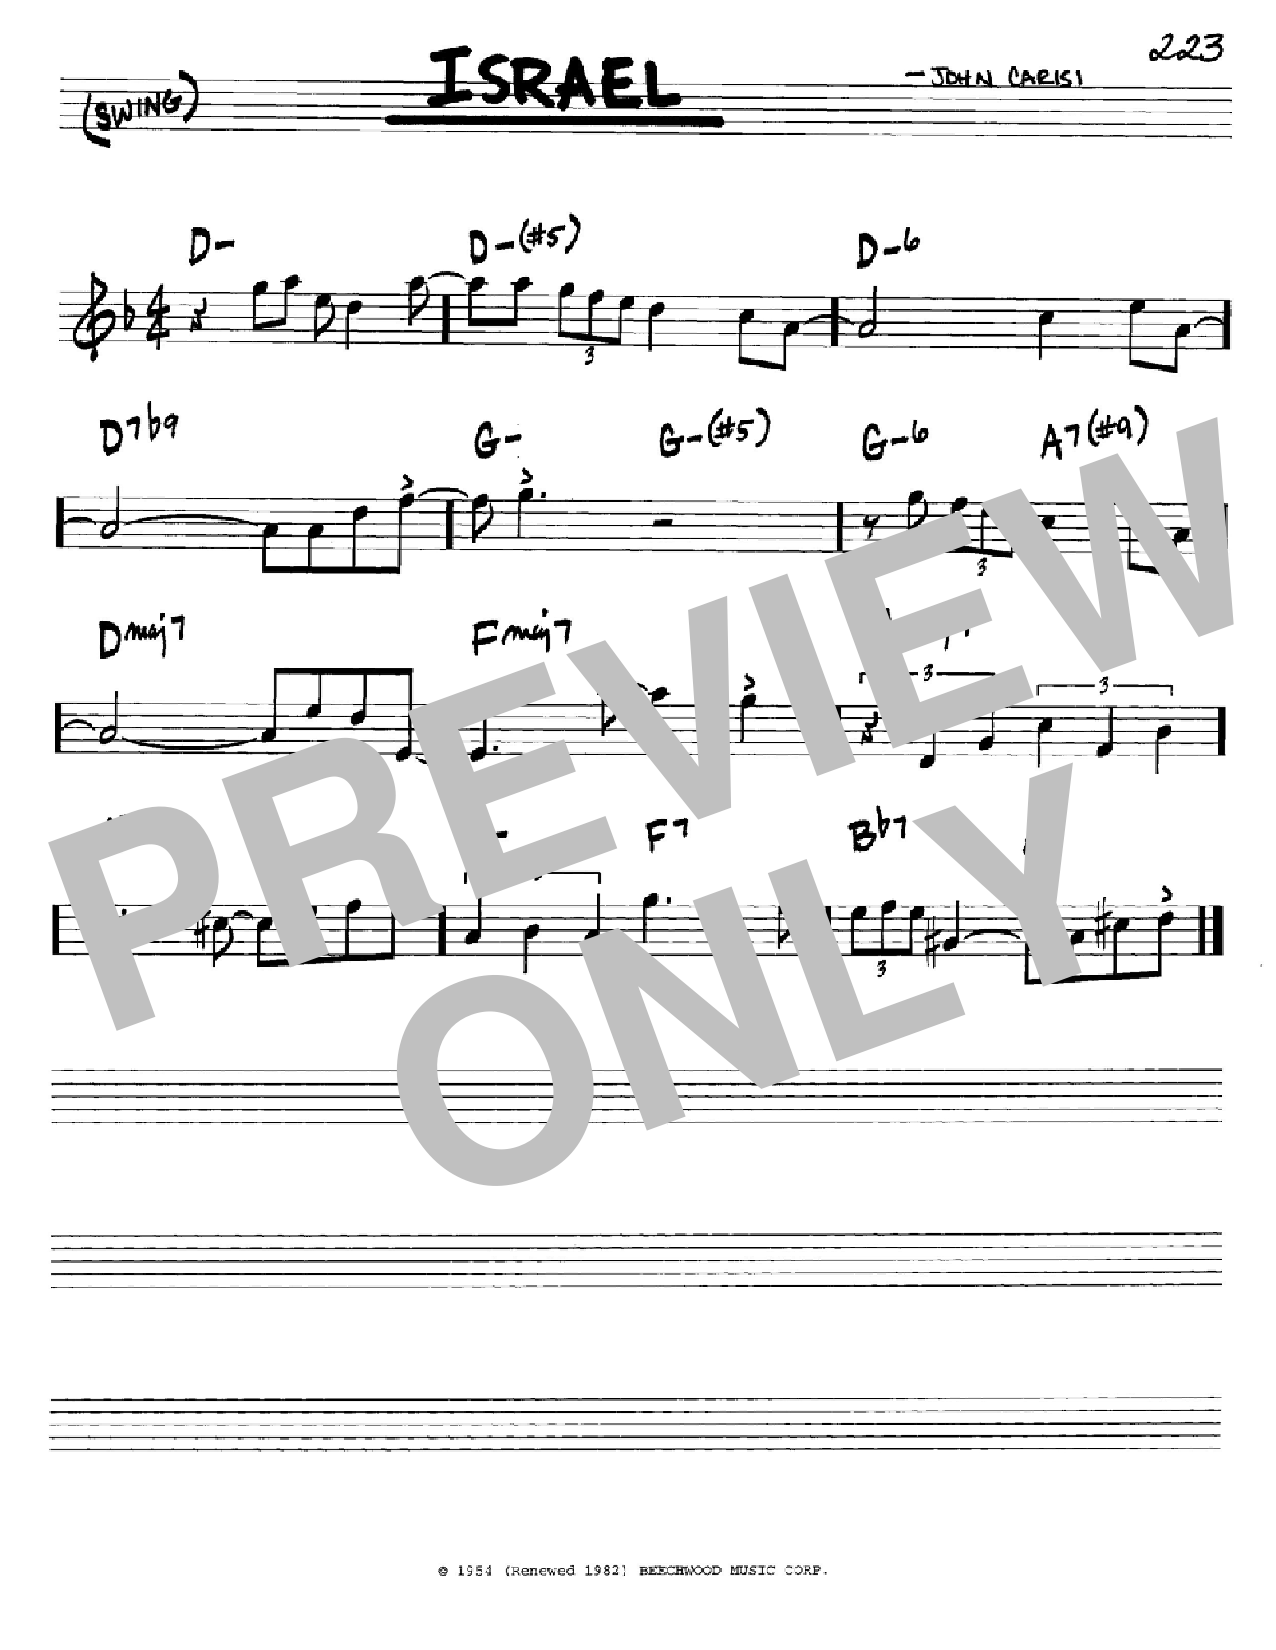 Israel Sheet Music